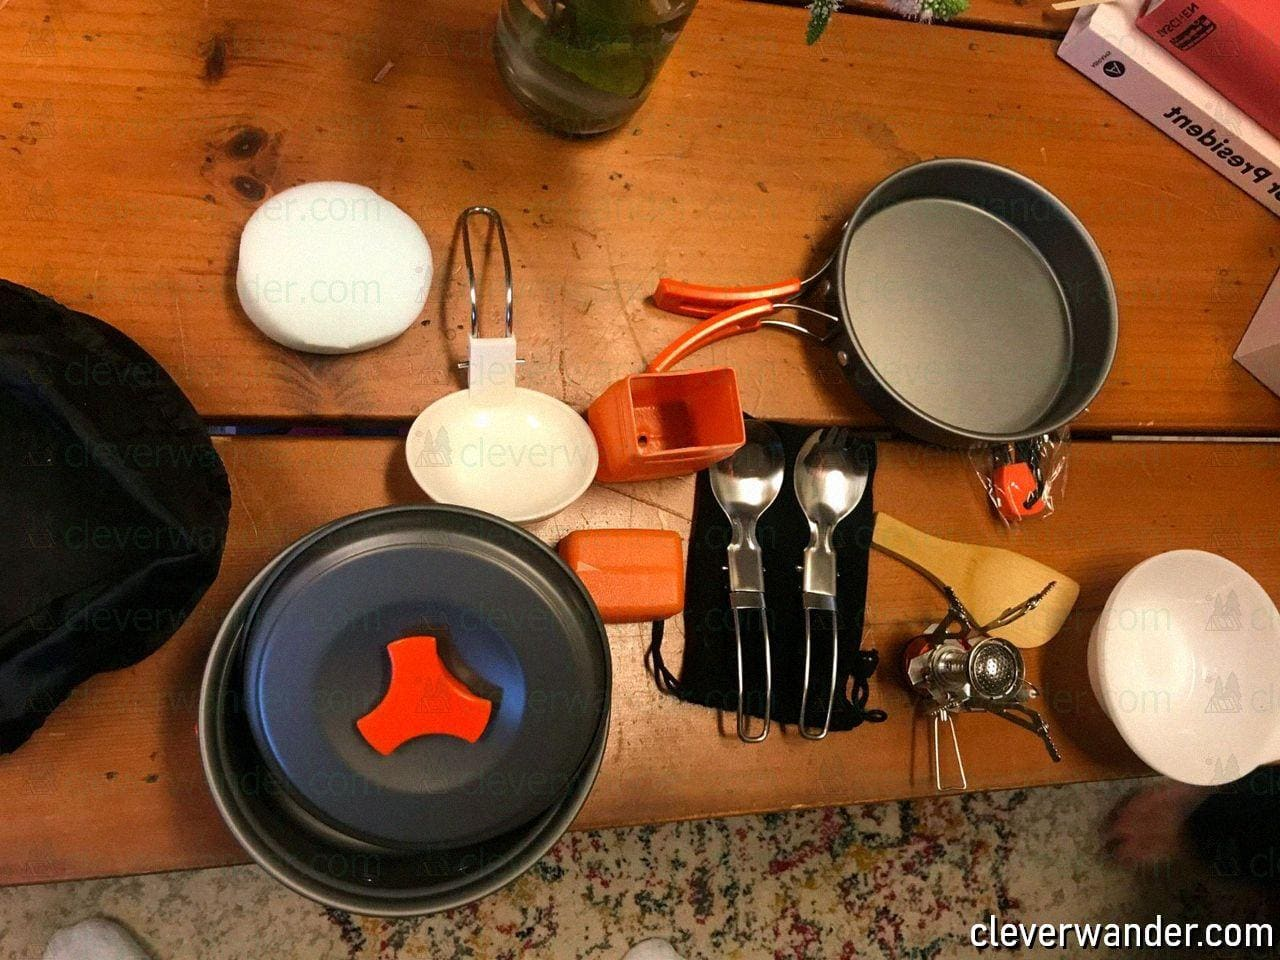 AnimeMiracle Pcs Camping Cookware Set - image review - 2